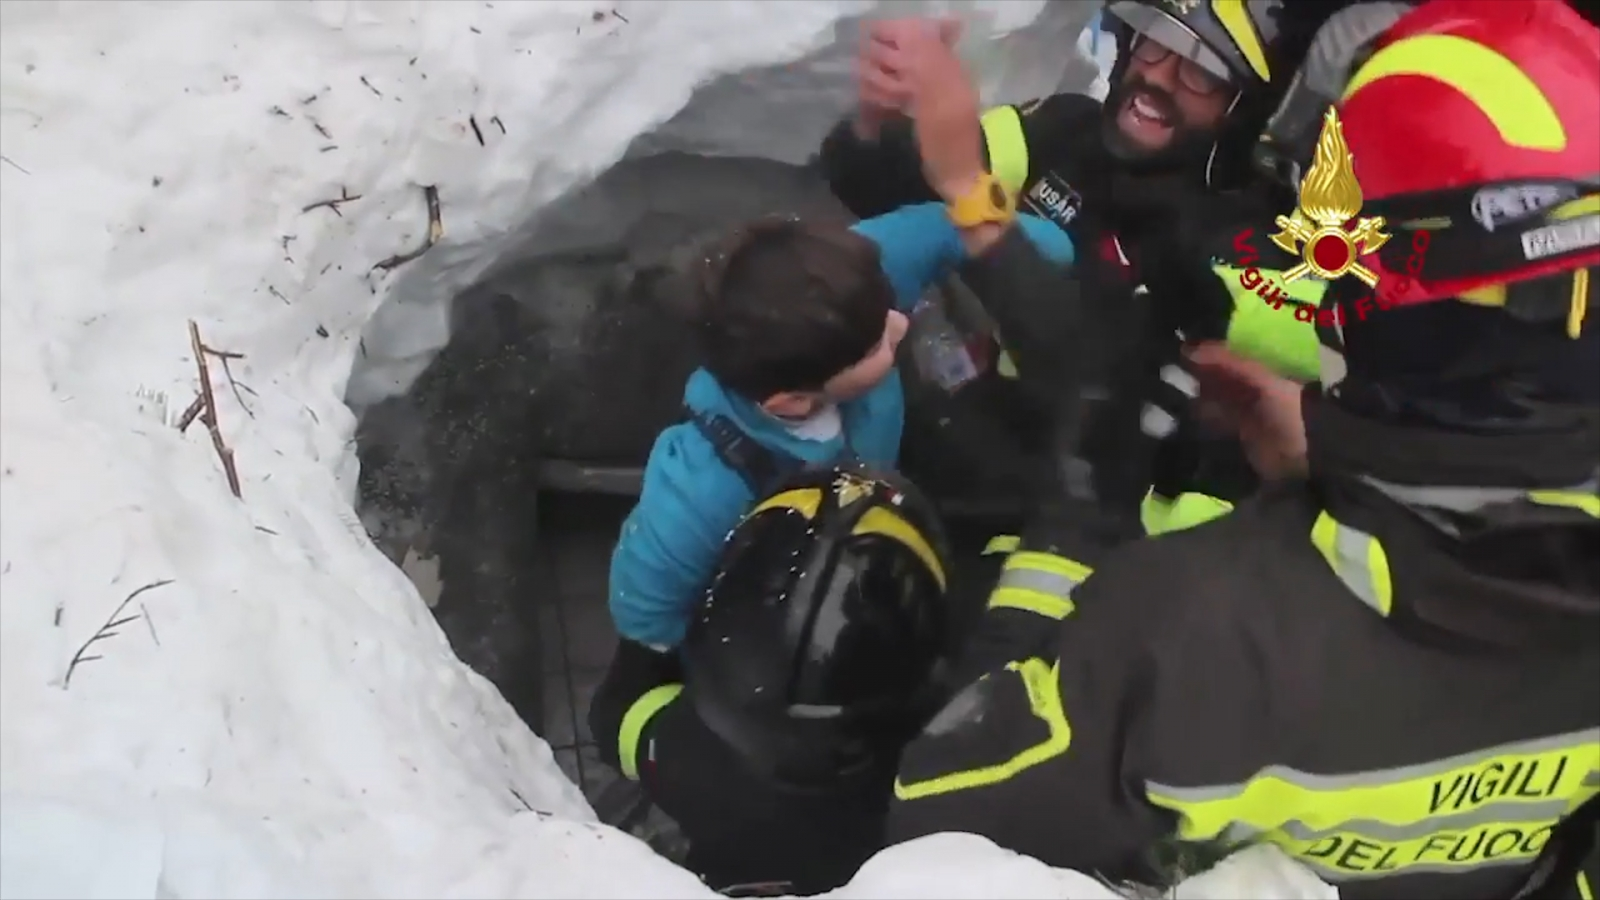 Survivors found in Italy avalanche as rescue operations continue